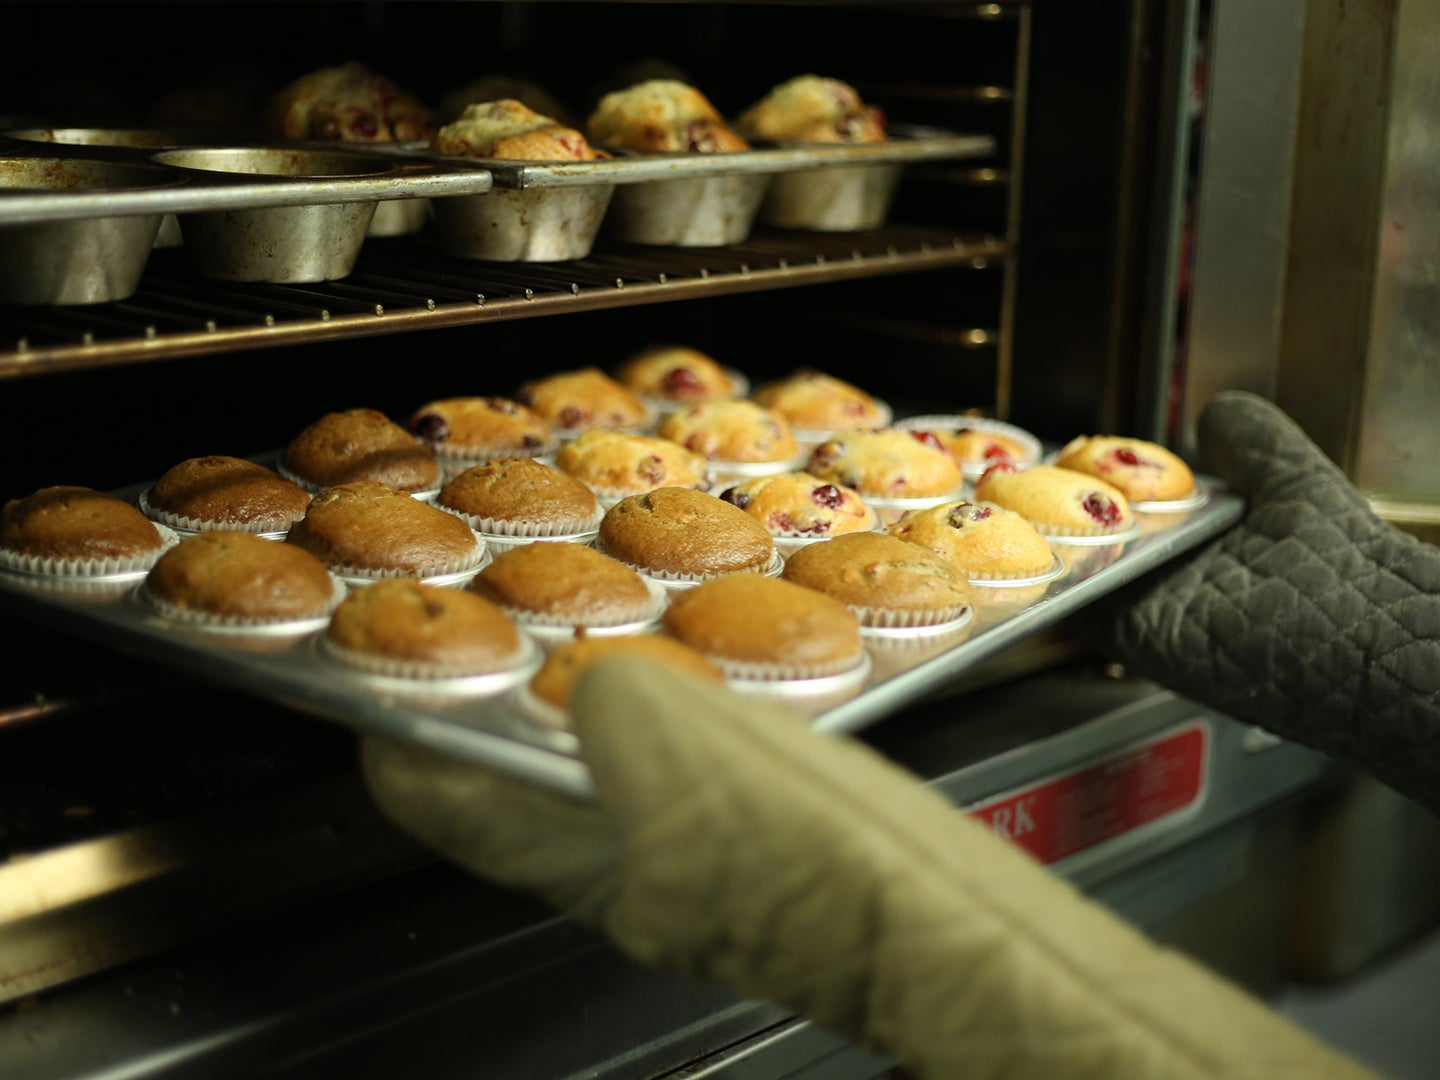 Removing muffins from oven with oven mitts.